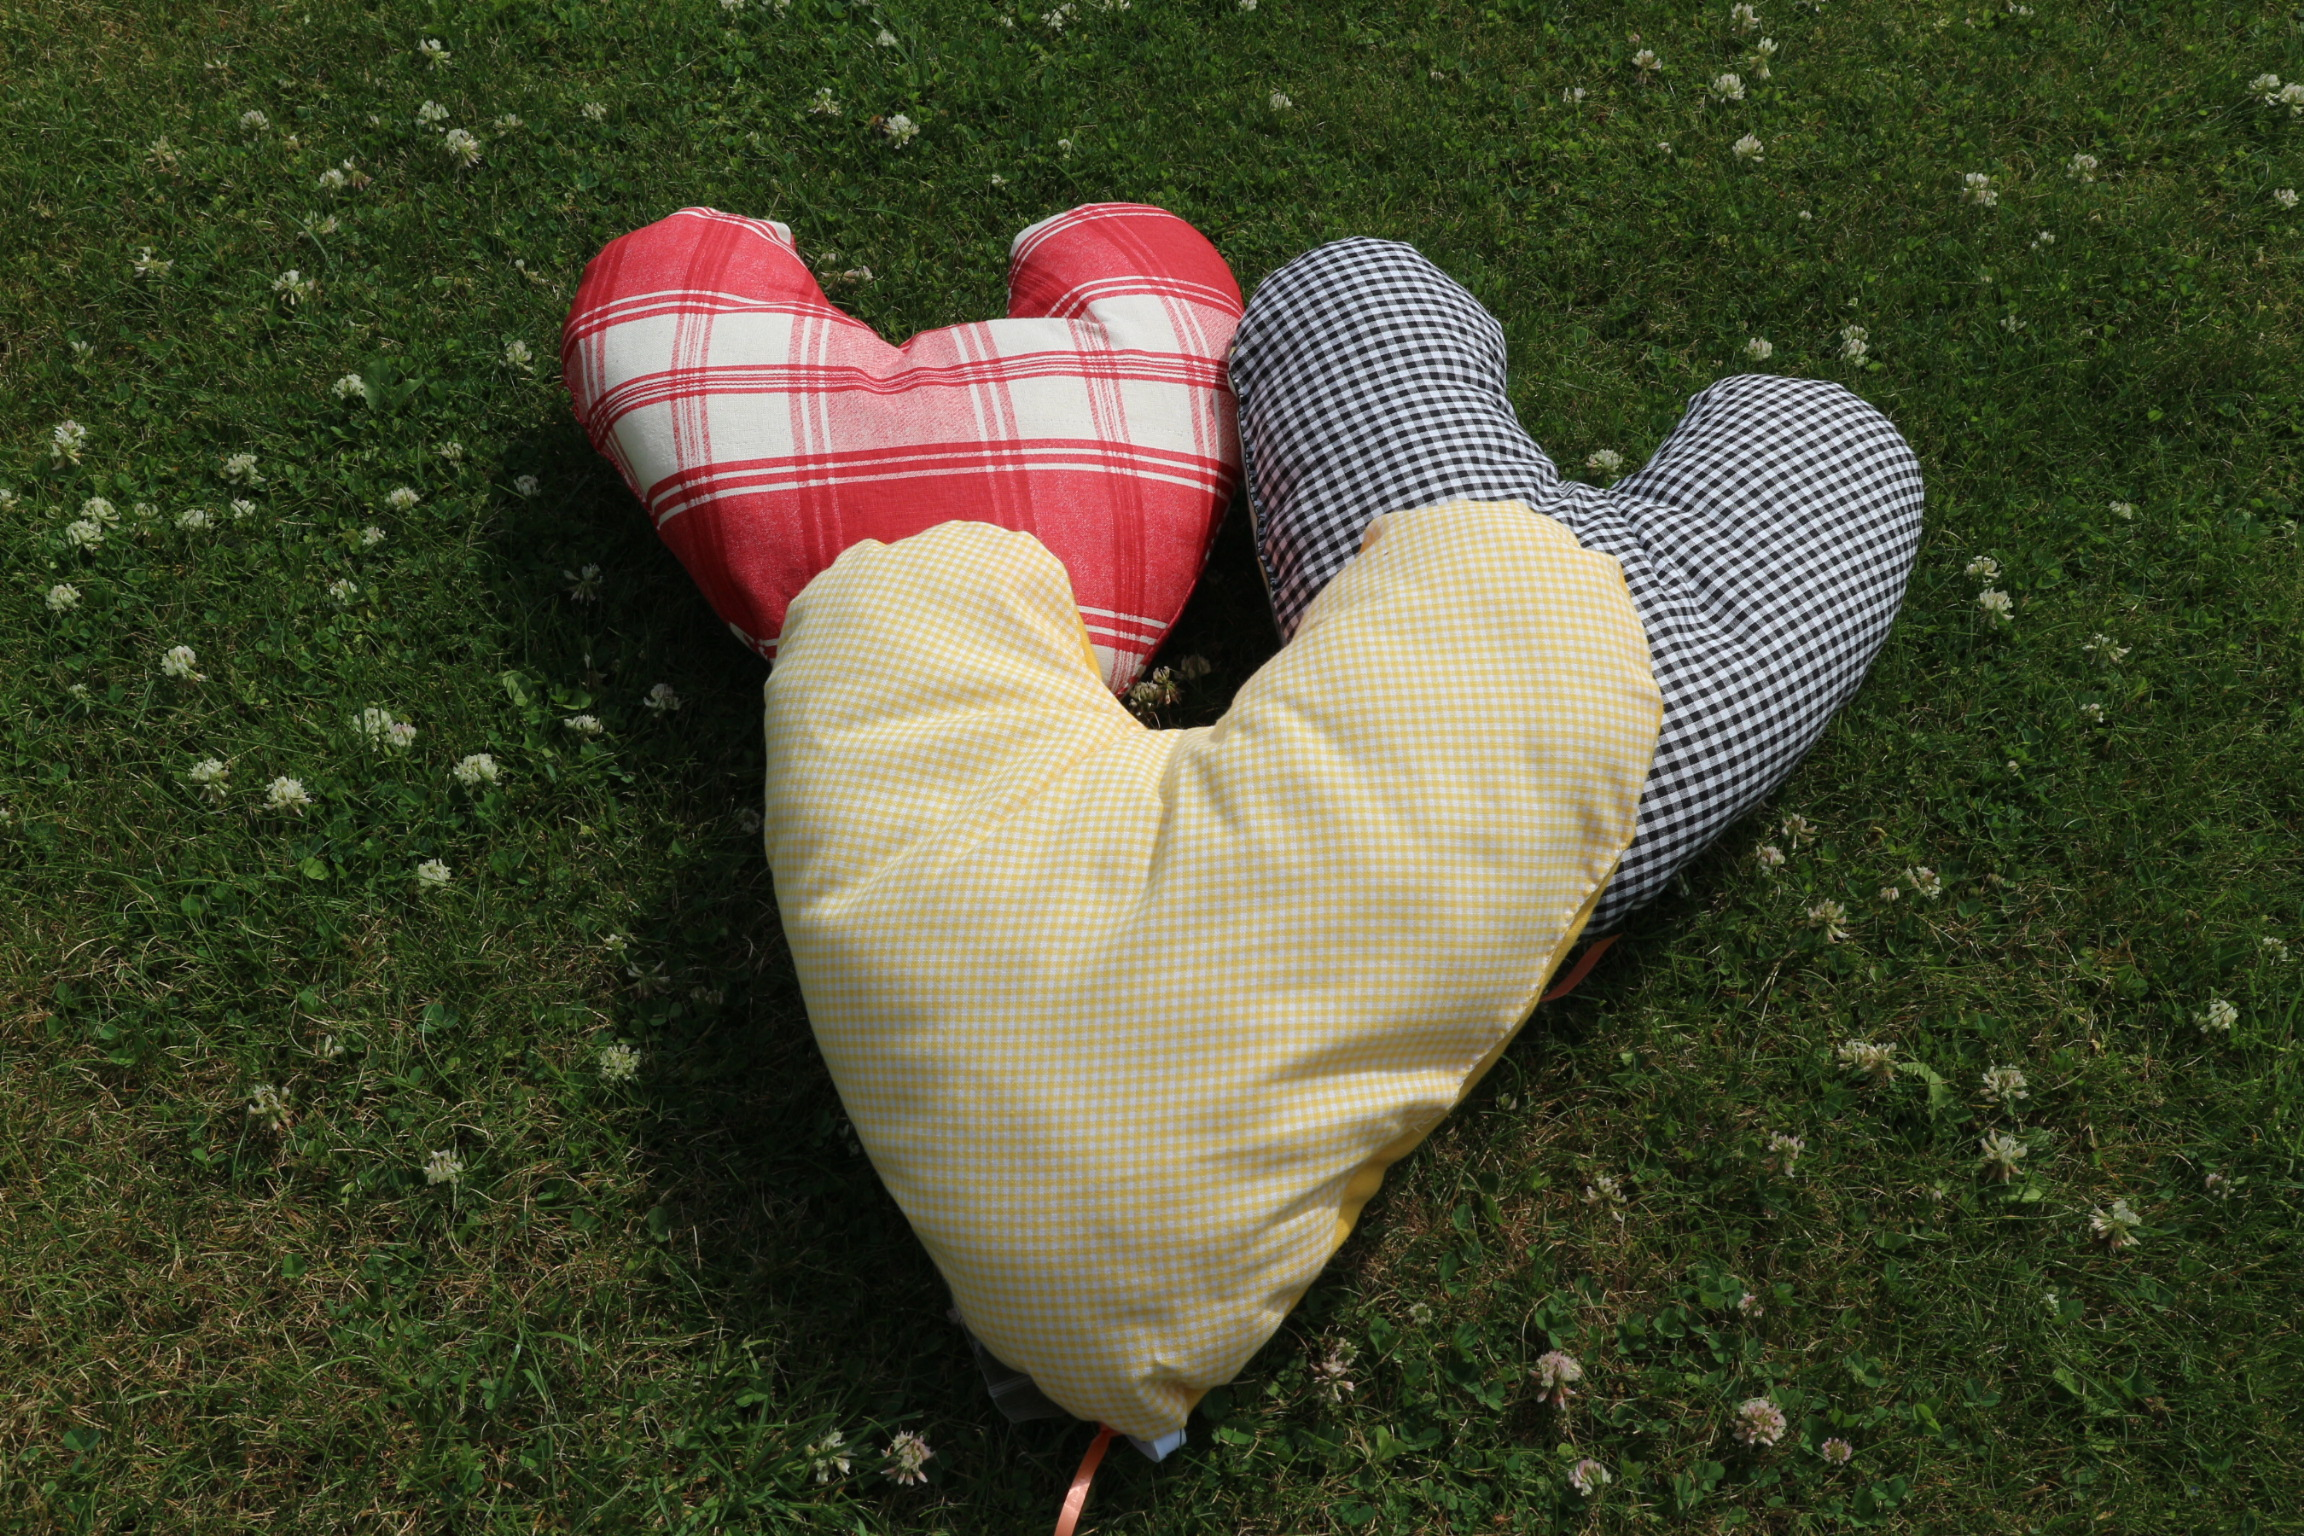 Heartpillows viva Vittoria